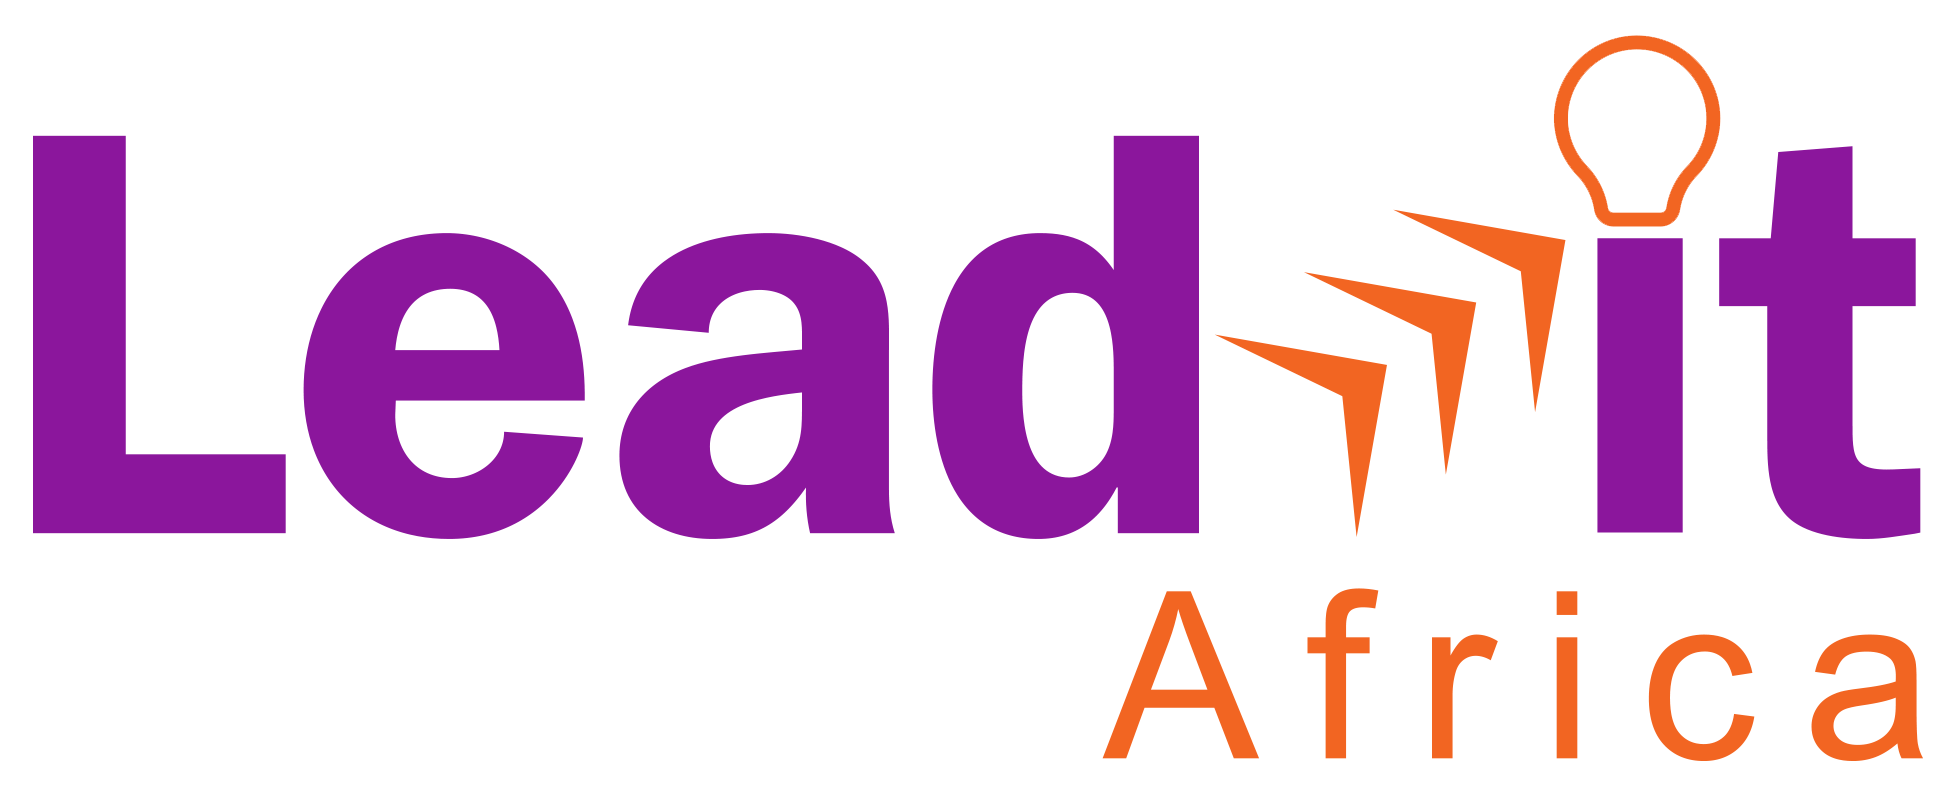 Lead it - Africa LOGO